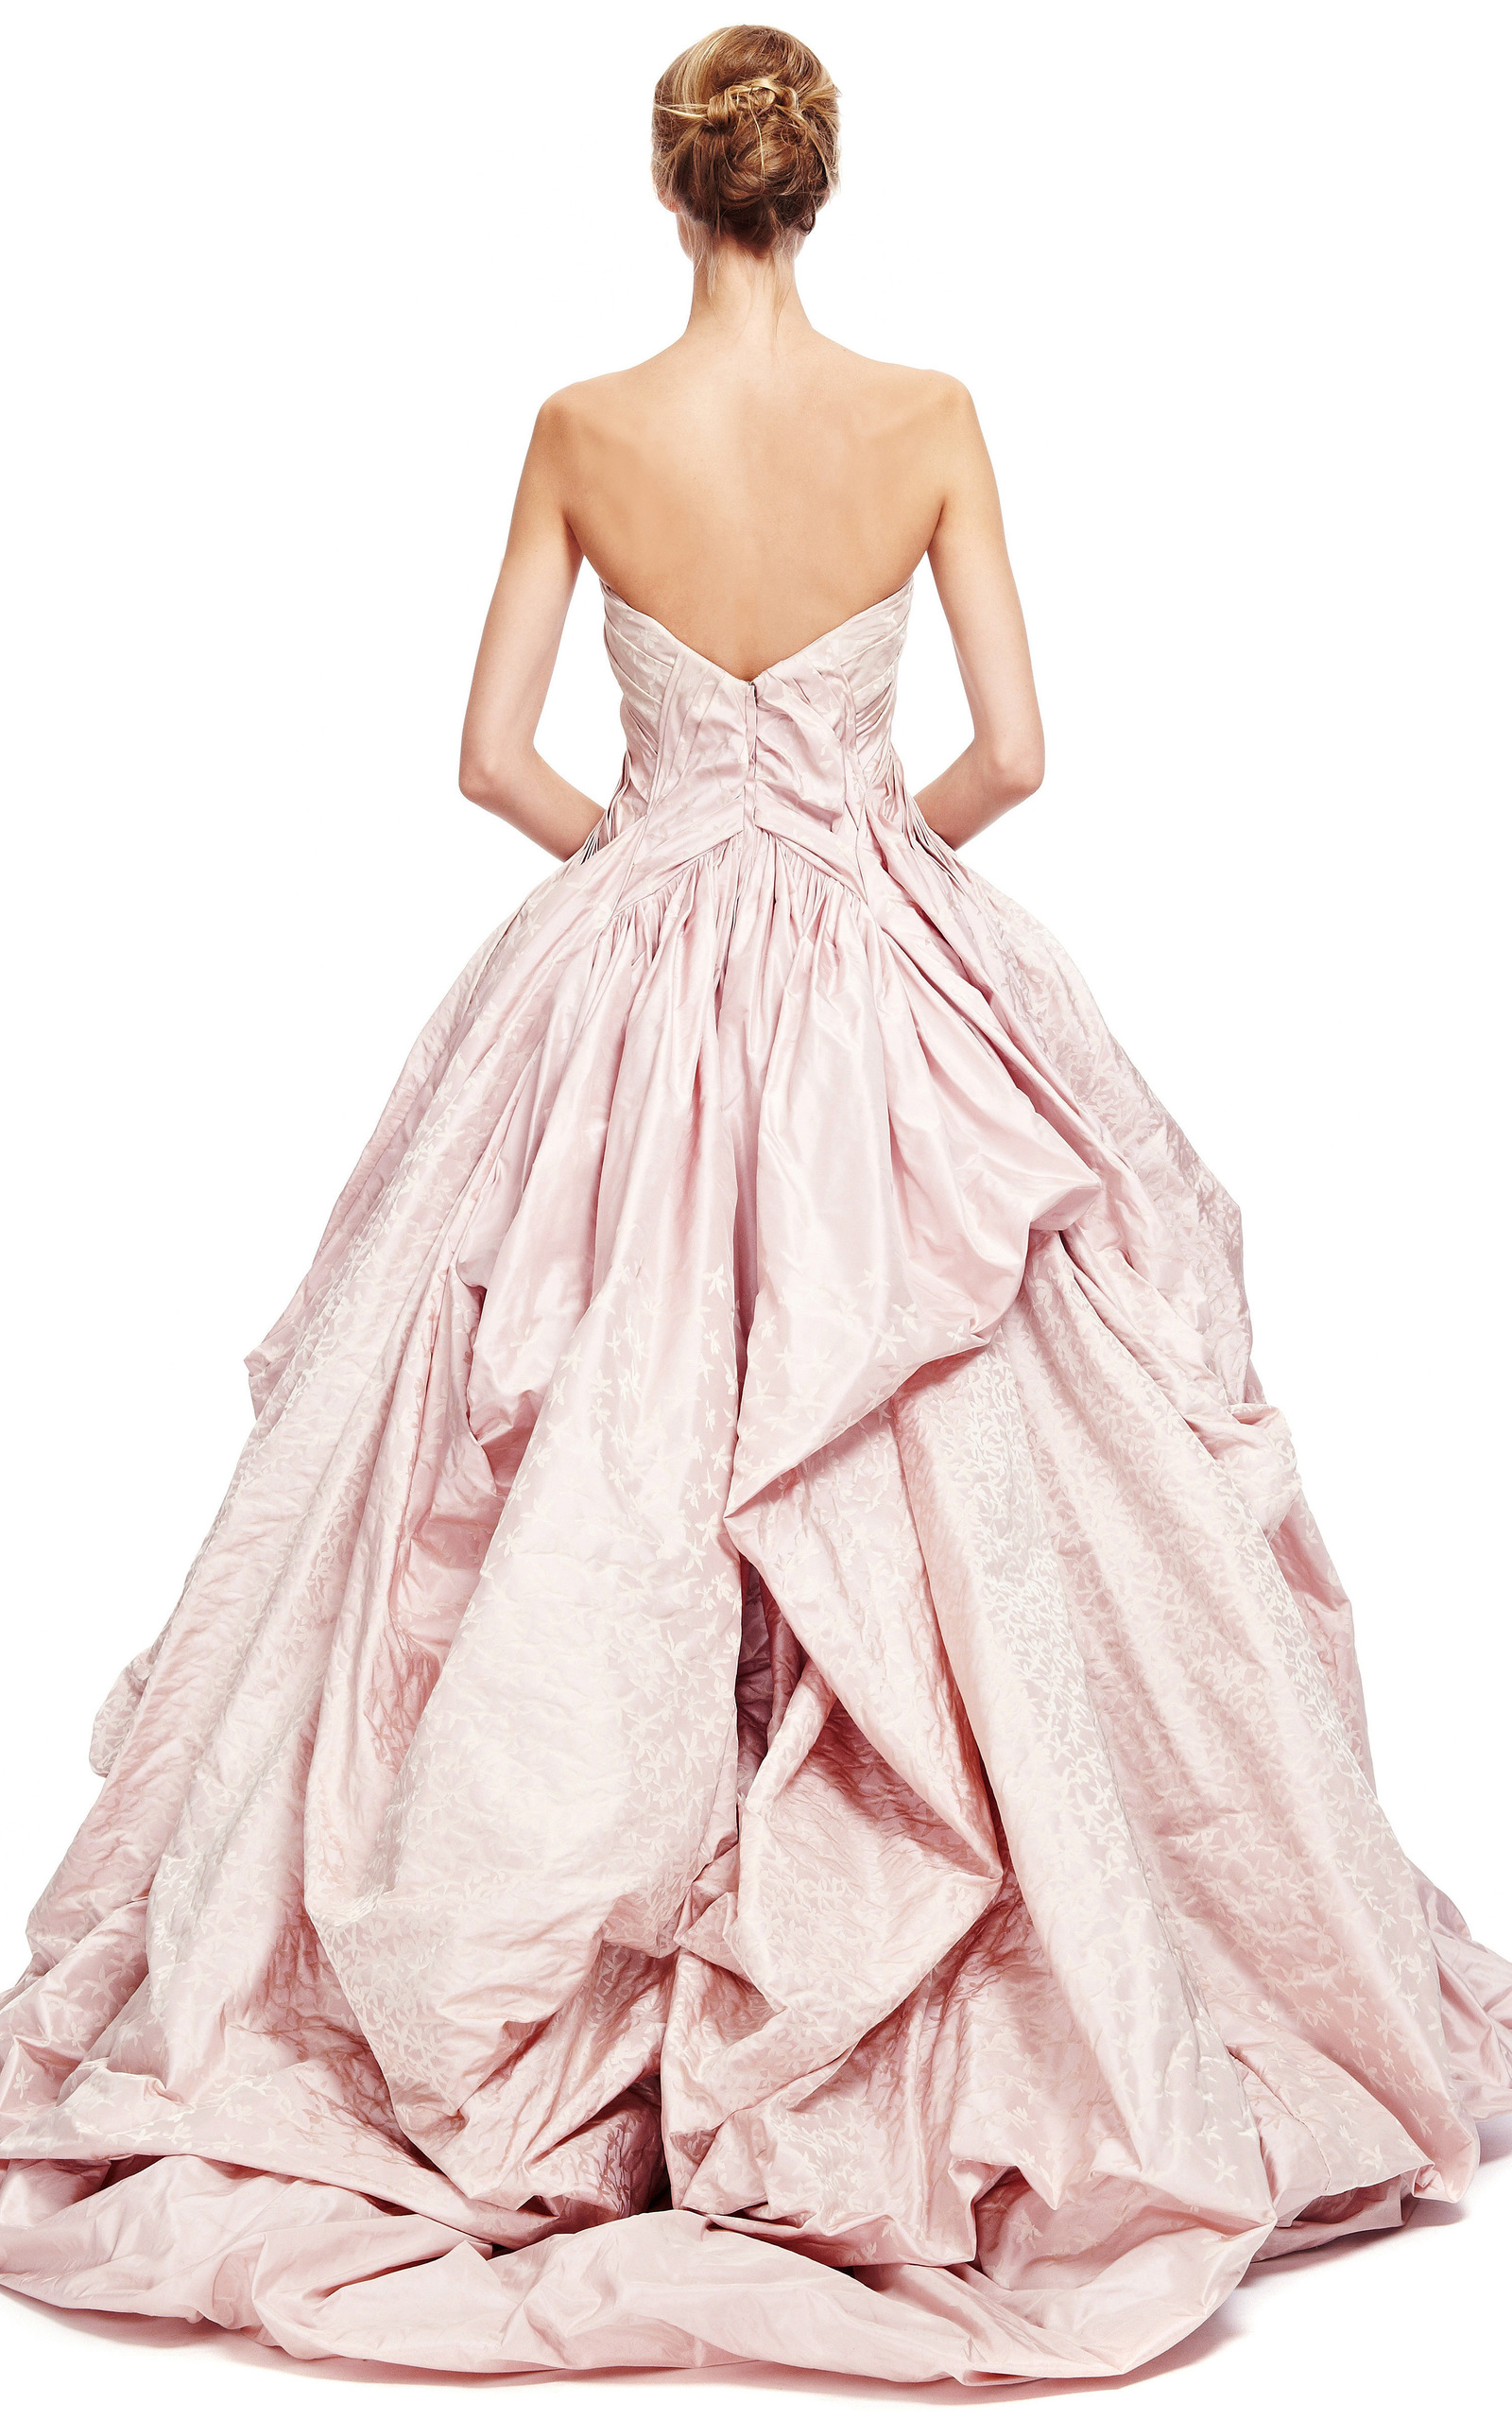 Iris taffeta gown by zac posen moda operandi for Zac posen wedding dresses sale